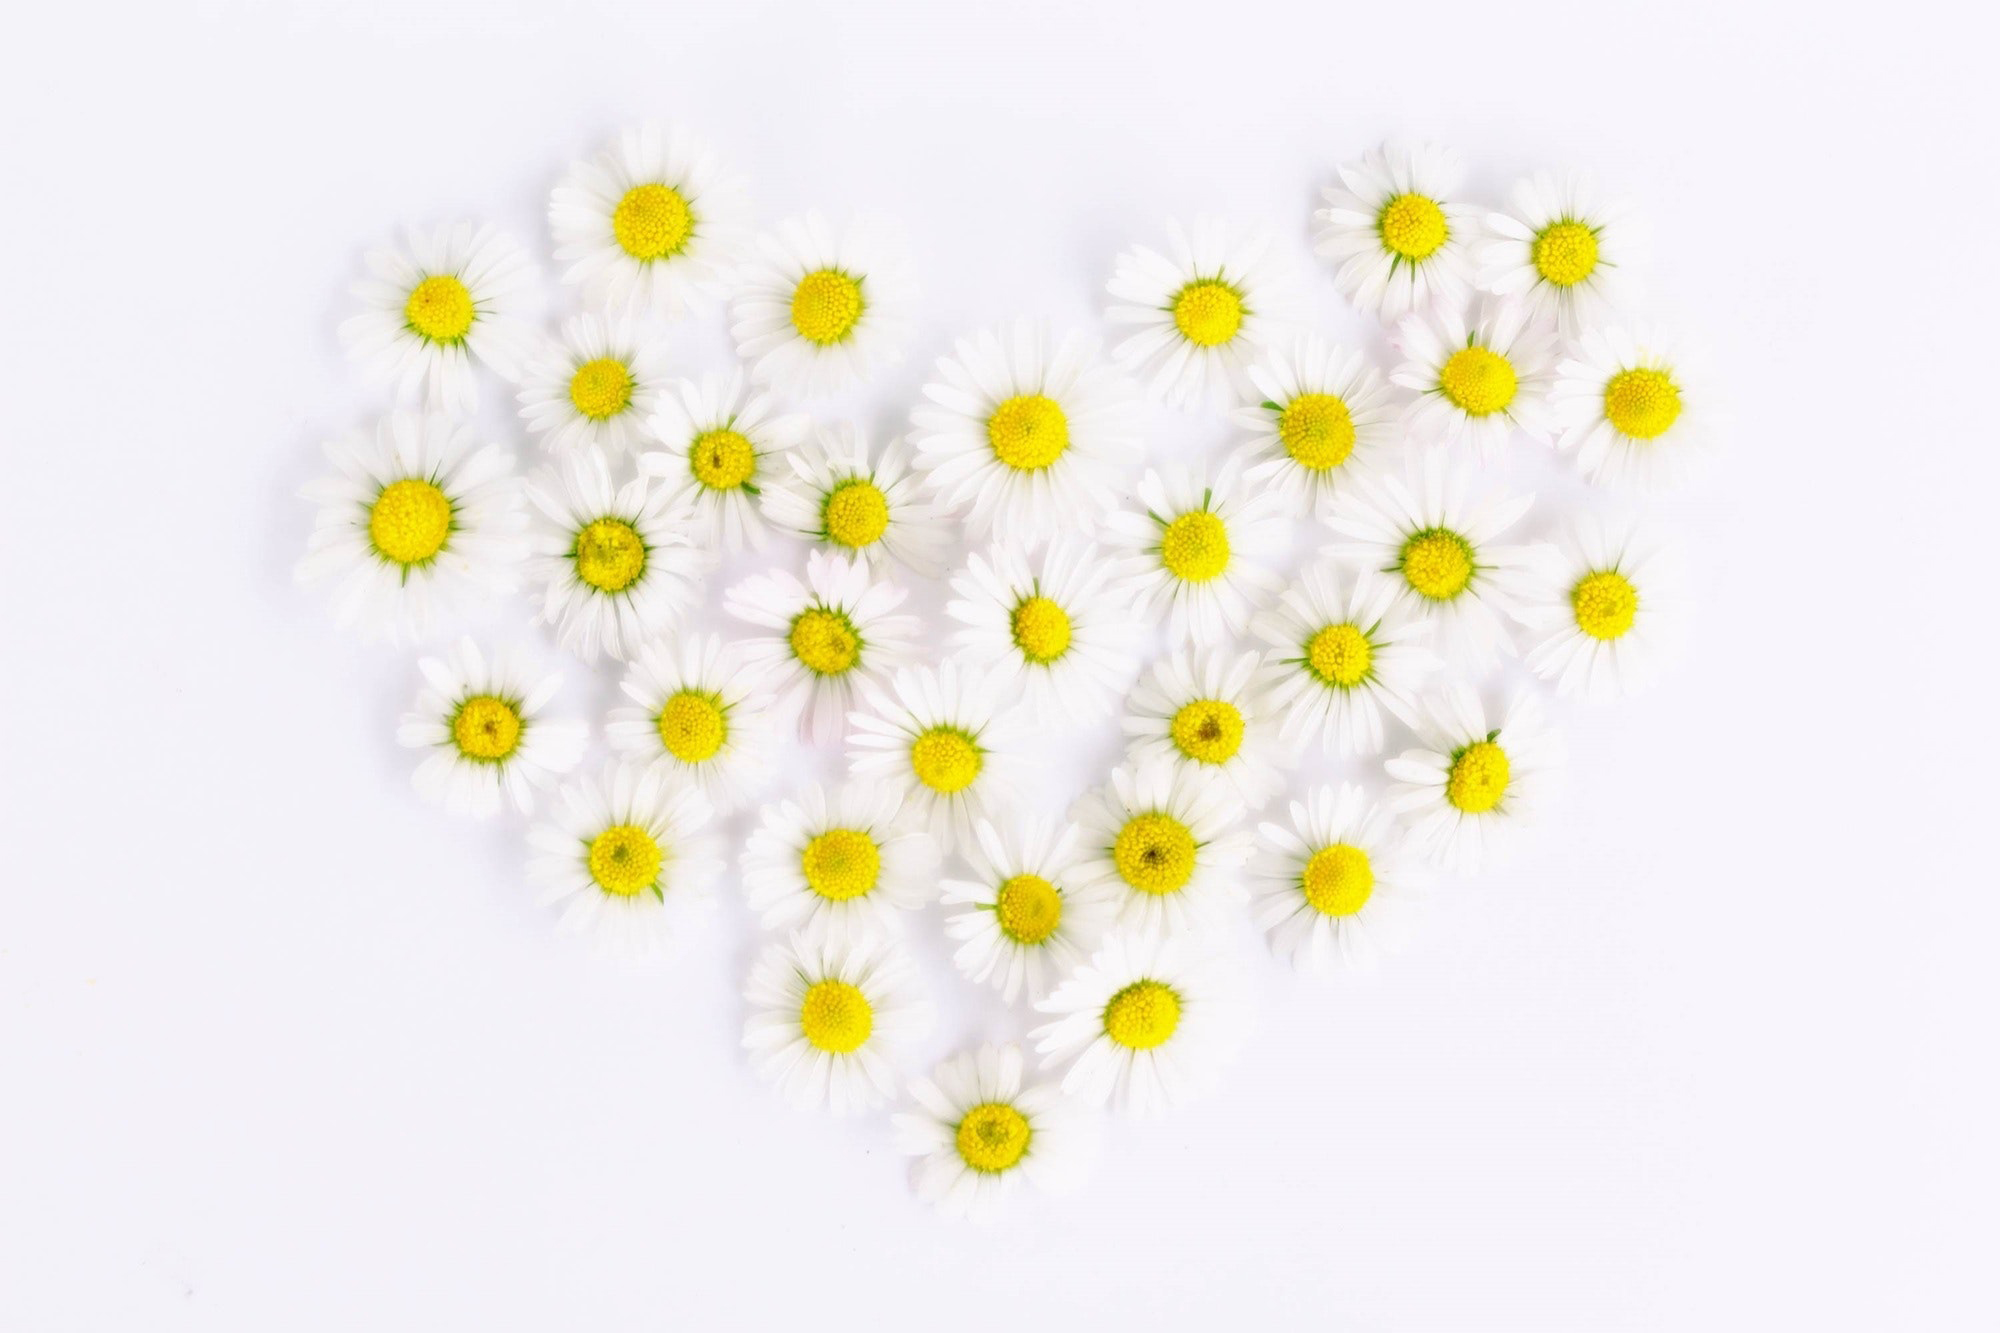 Daisies, flowers,heart,nature,white